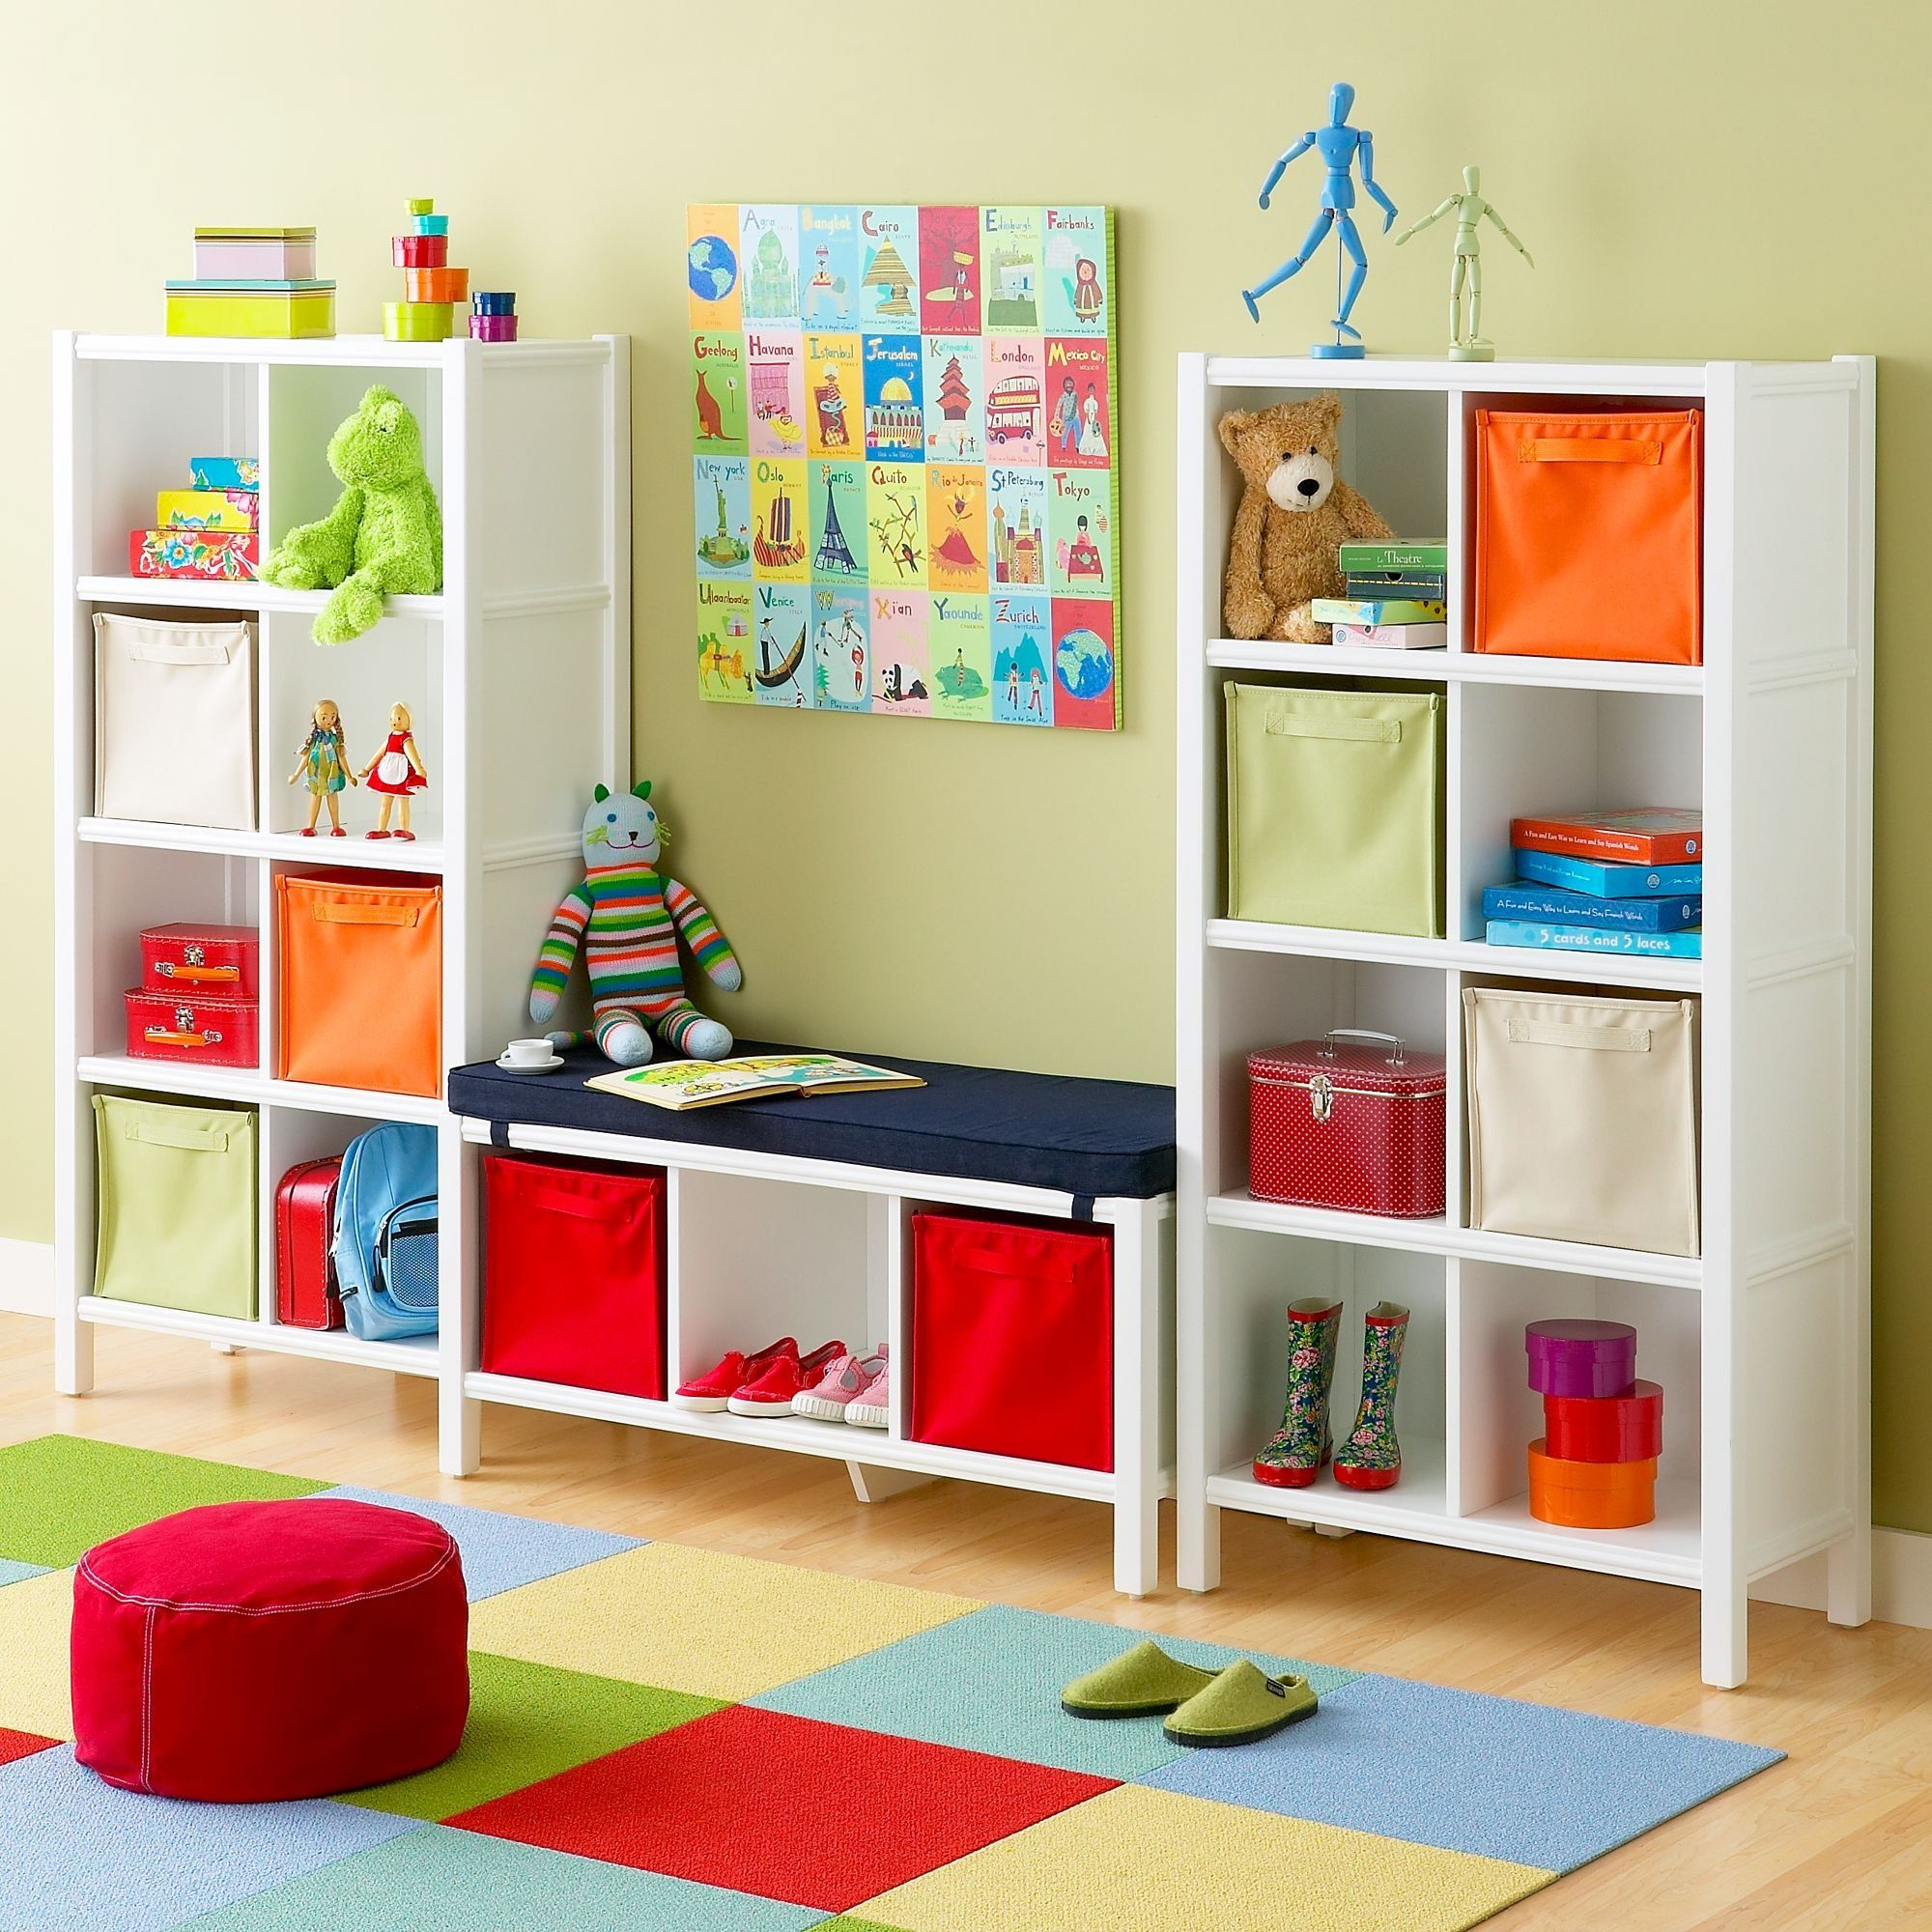 Baffling Design Ideas Toys Shelving With White Color Wooden